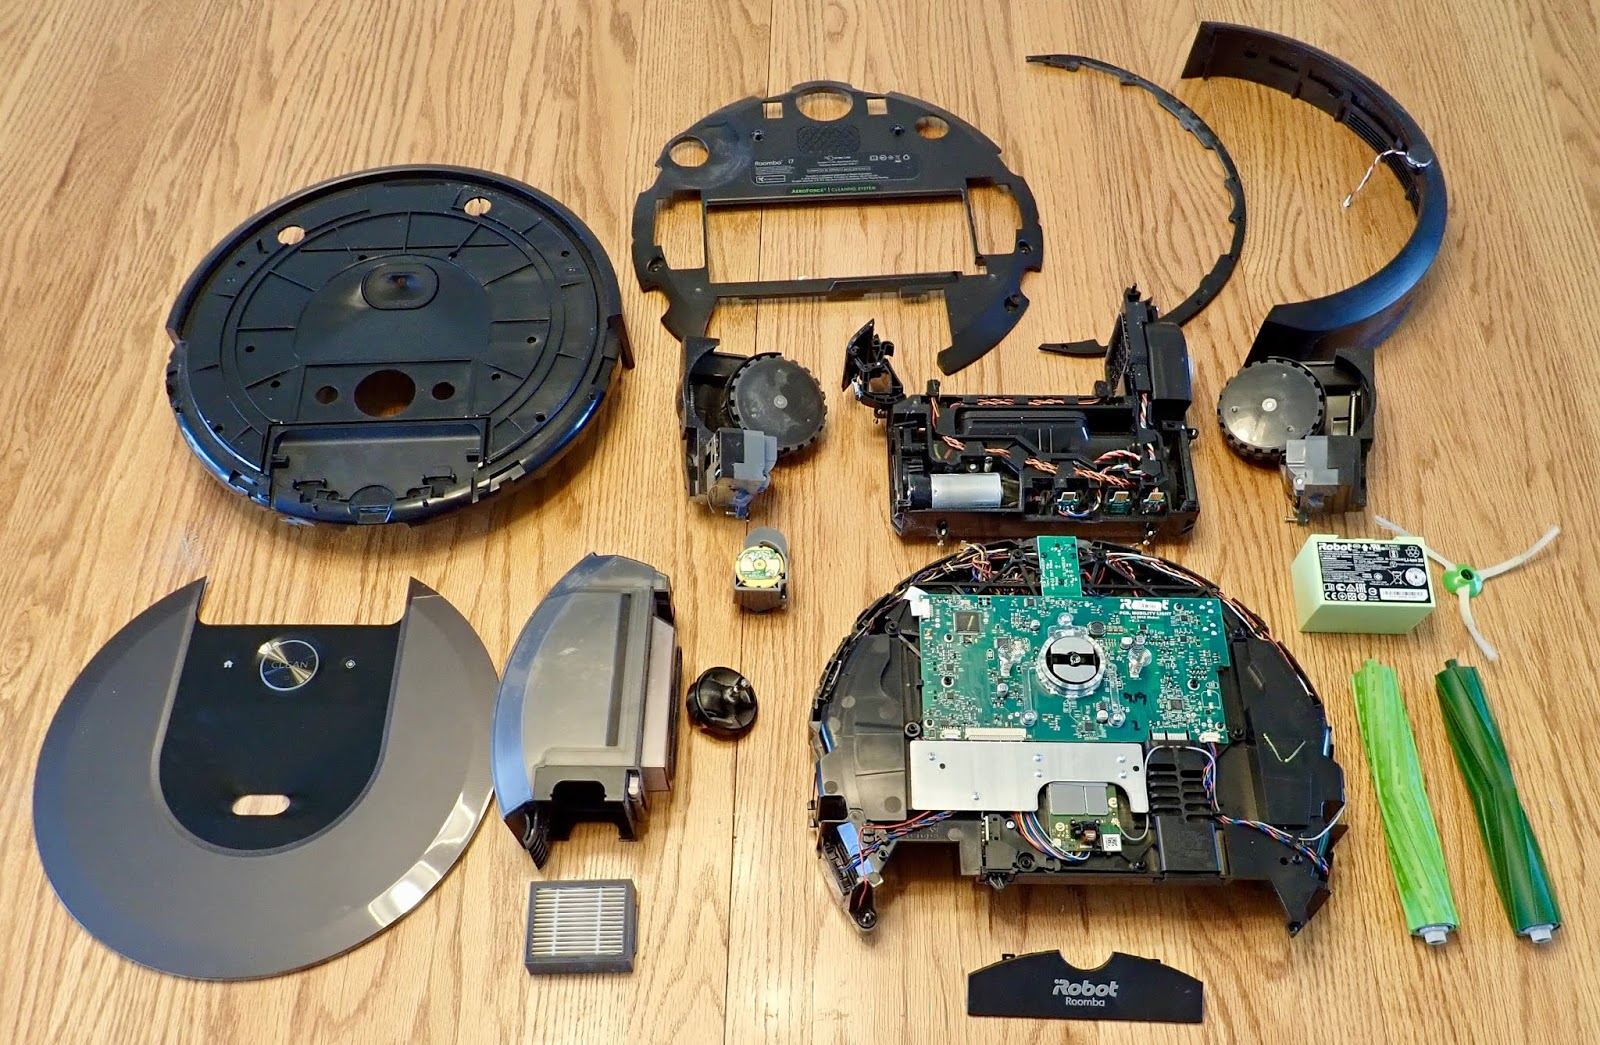 Syonyk S Project Blog Roomba I7 Teardown Why Is There A Waving Cat With A Lint Roller Inside